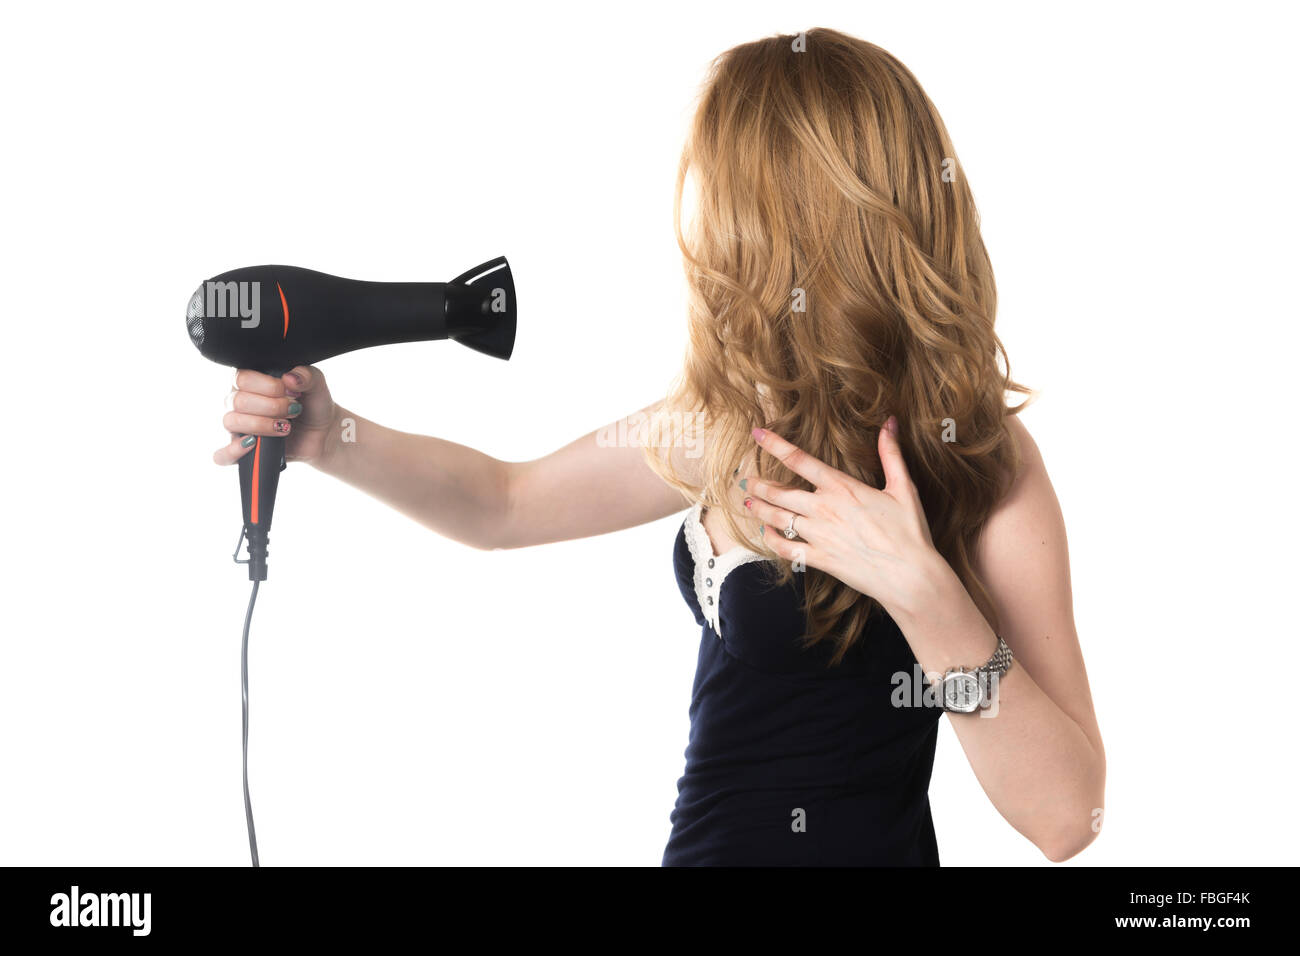 Young gorgeous blond Caucasian woman holding black hair dryer, styling her beautiful long hair, studio shot, isolated - Stock Image